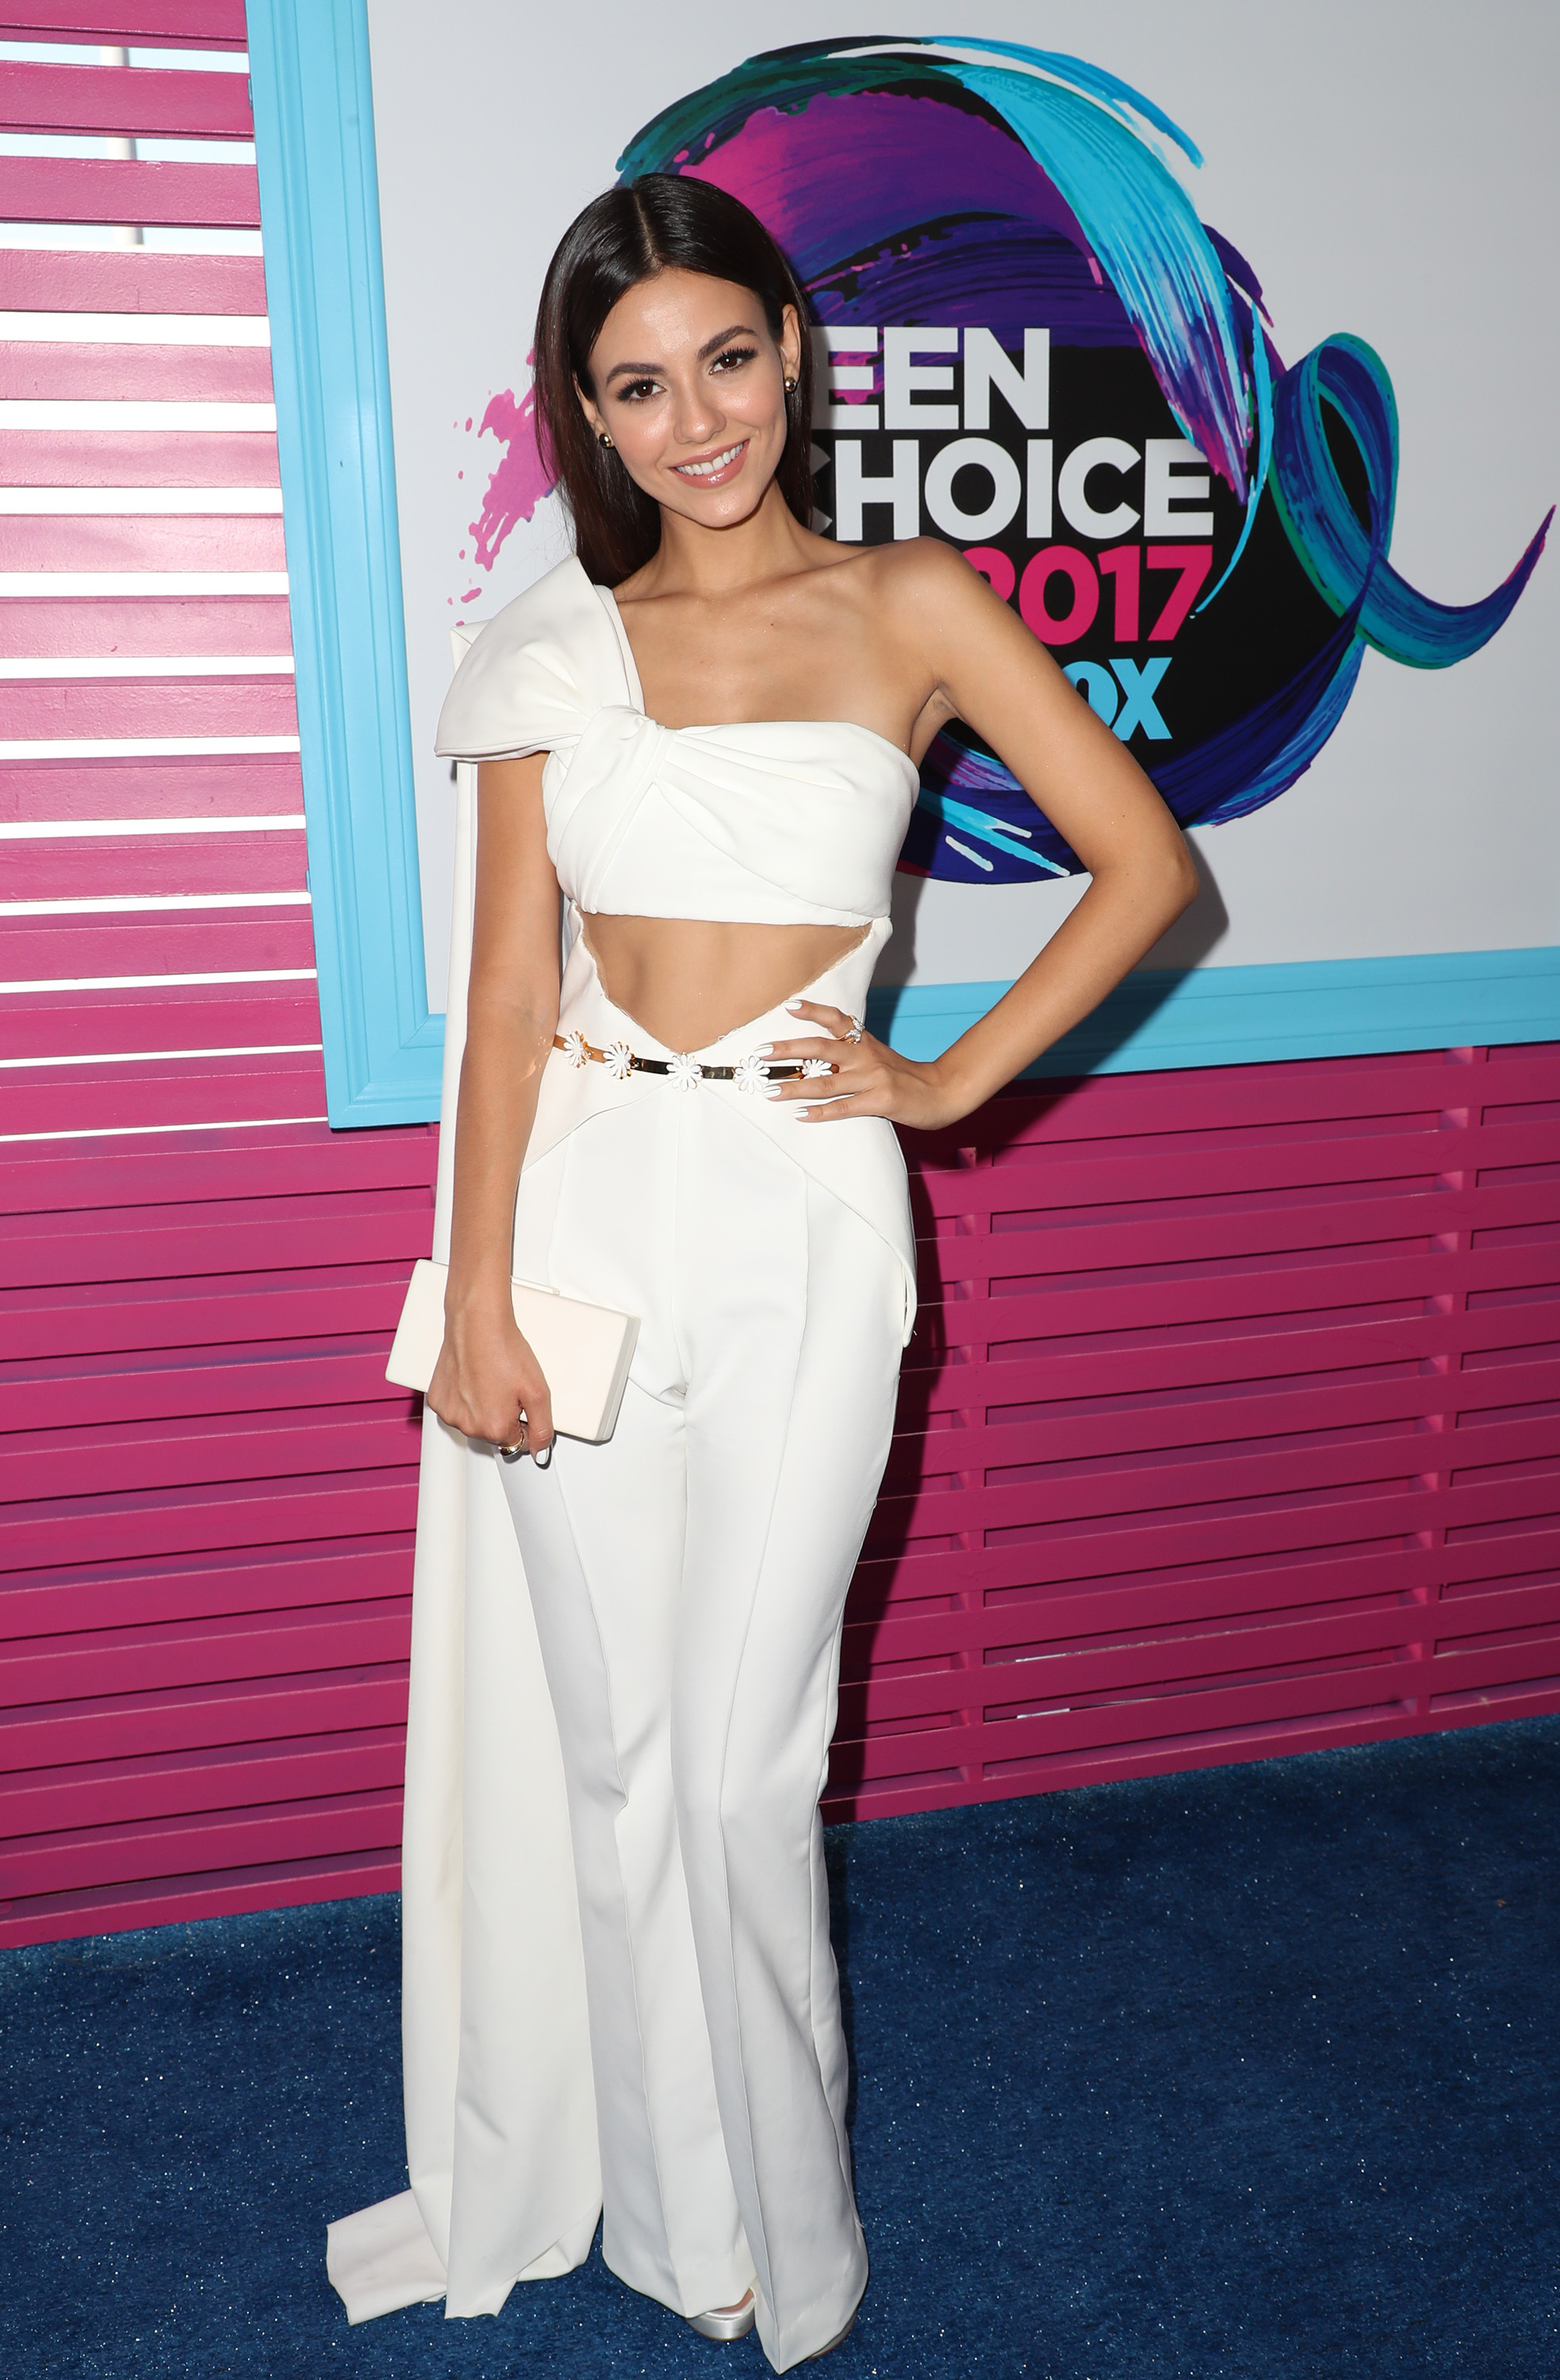 Victoria Justice attends the Teen Choice Awards in Los Angeles on Aug. 13, 2017.